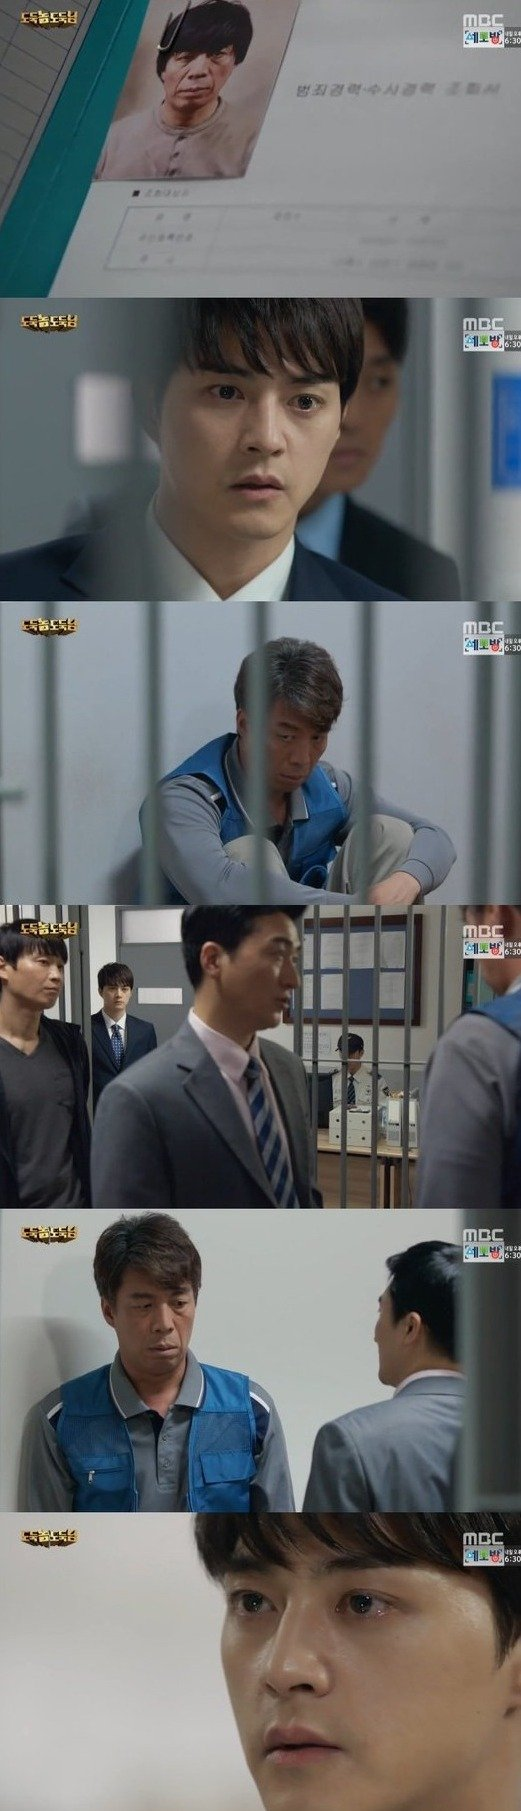 [Spoiler] Added episodes 7 and 8 captures for the Korean drama 'Bad Thief, Good Thief'